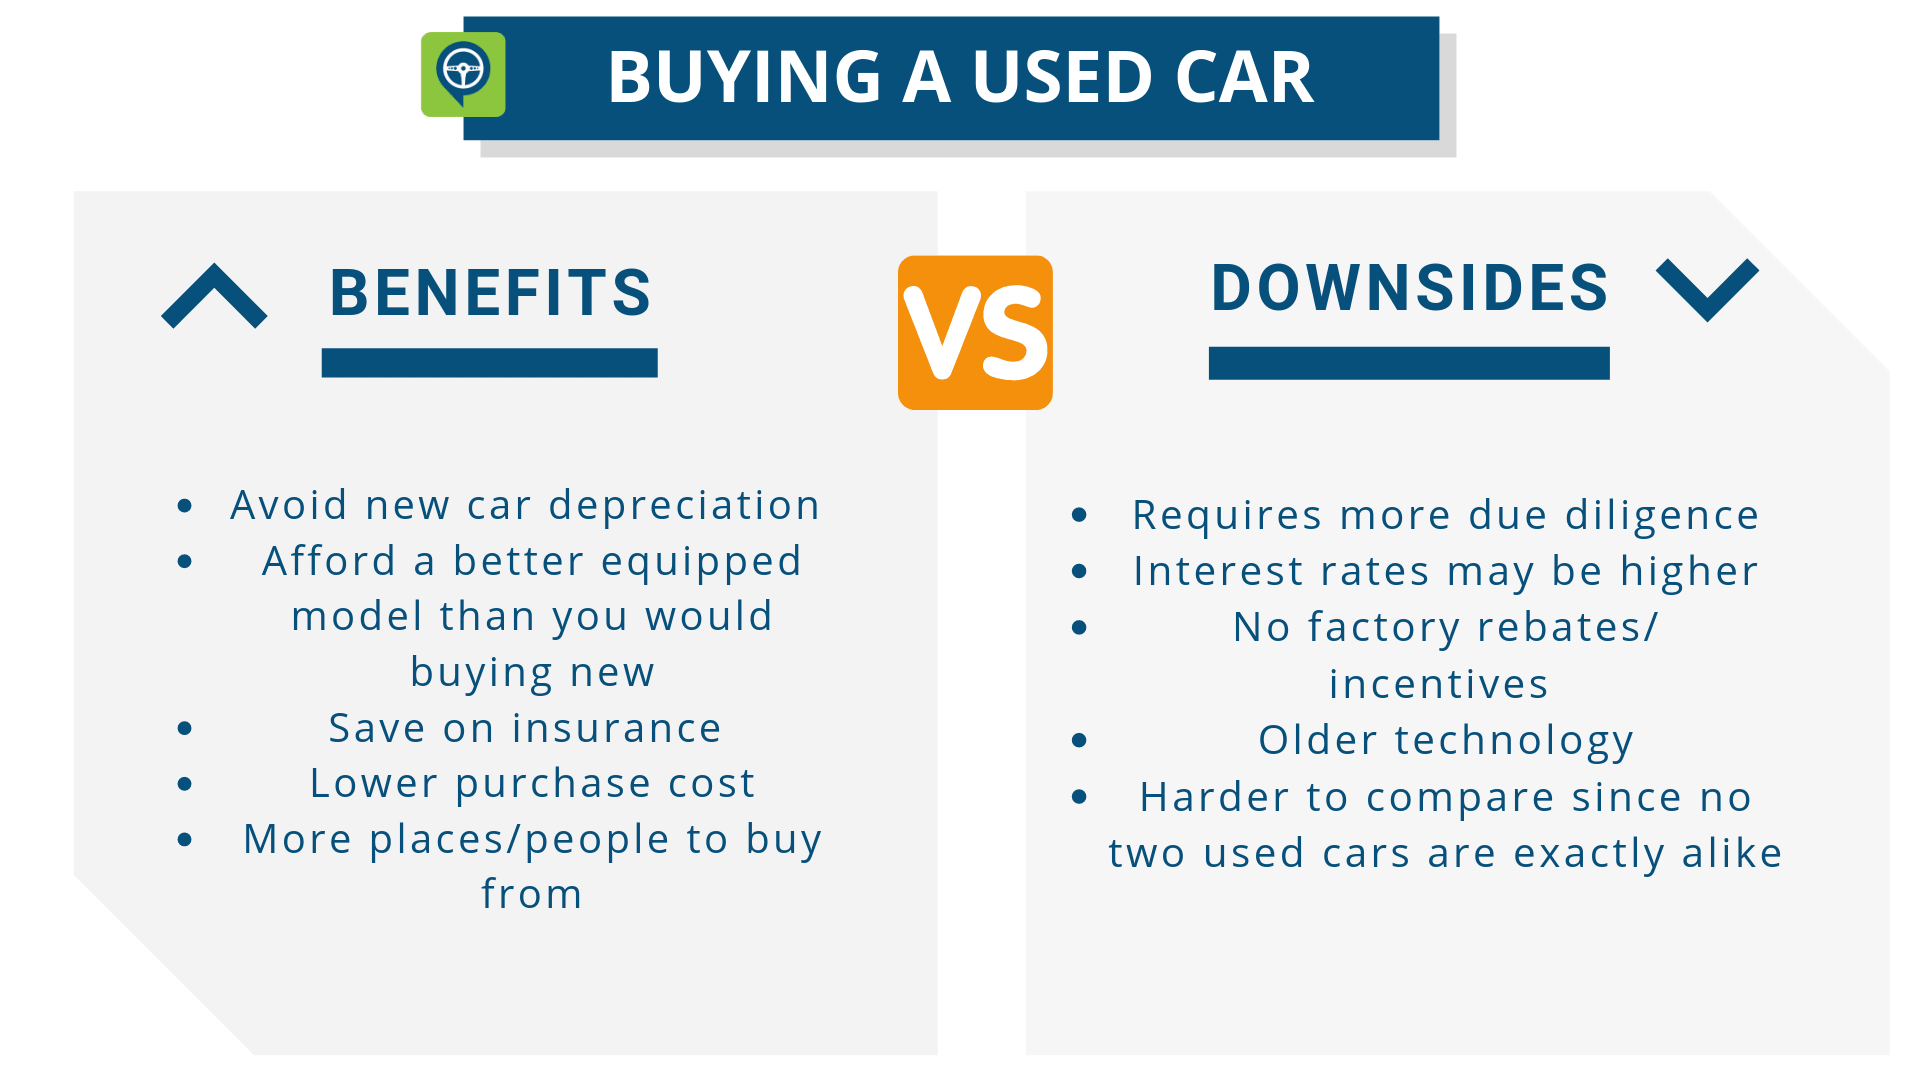 Buying a Used Car - Benefits: Avoid new car depreciation, Afford a better equipped model than you would buying new, Save on insurance, Lower purchase cost, More places/people to buy from. Downsides: Requires more due diligence, Interest rates may be higher, No factory rebates/incentives, Older technology, Harder to compare since no two used cars are exactly alike